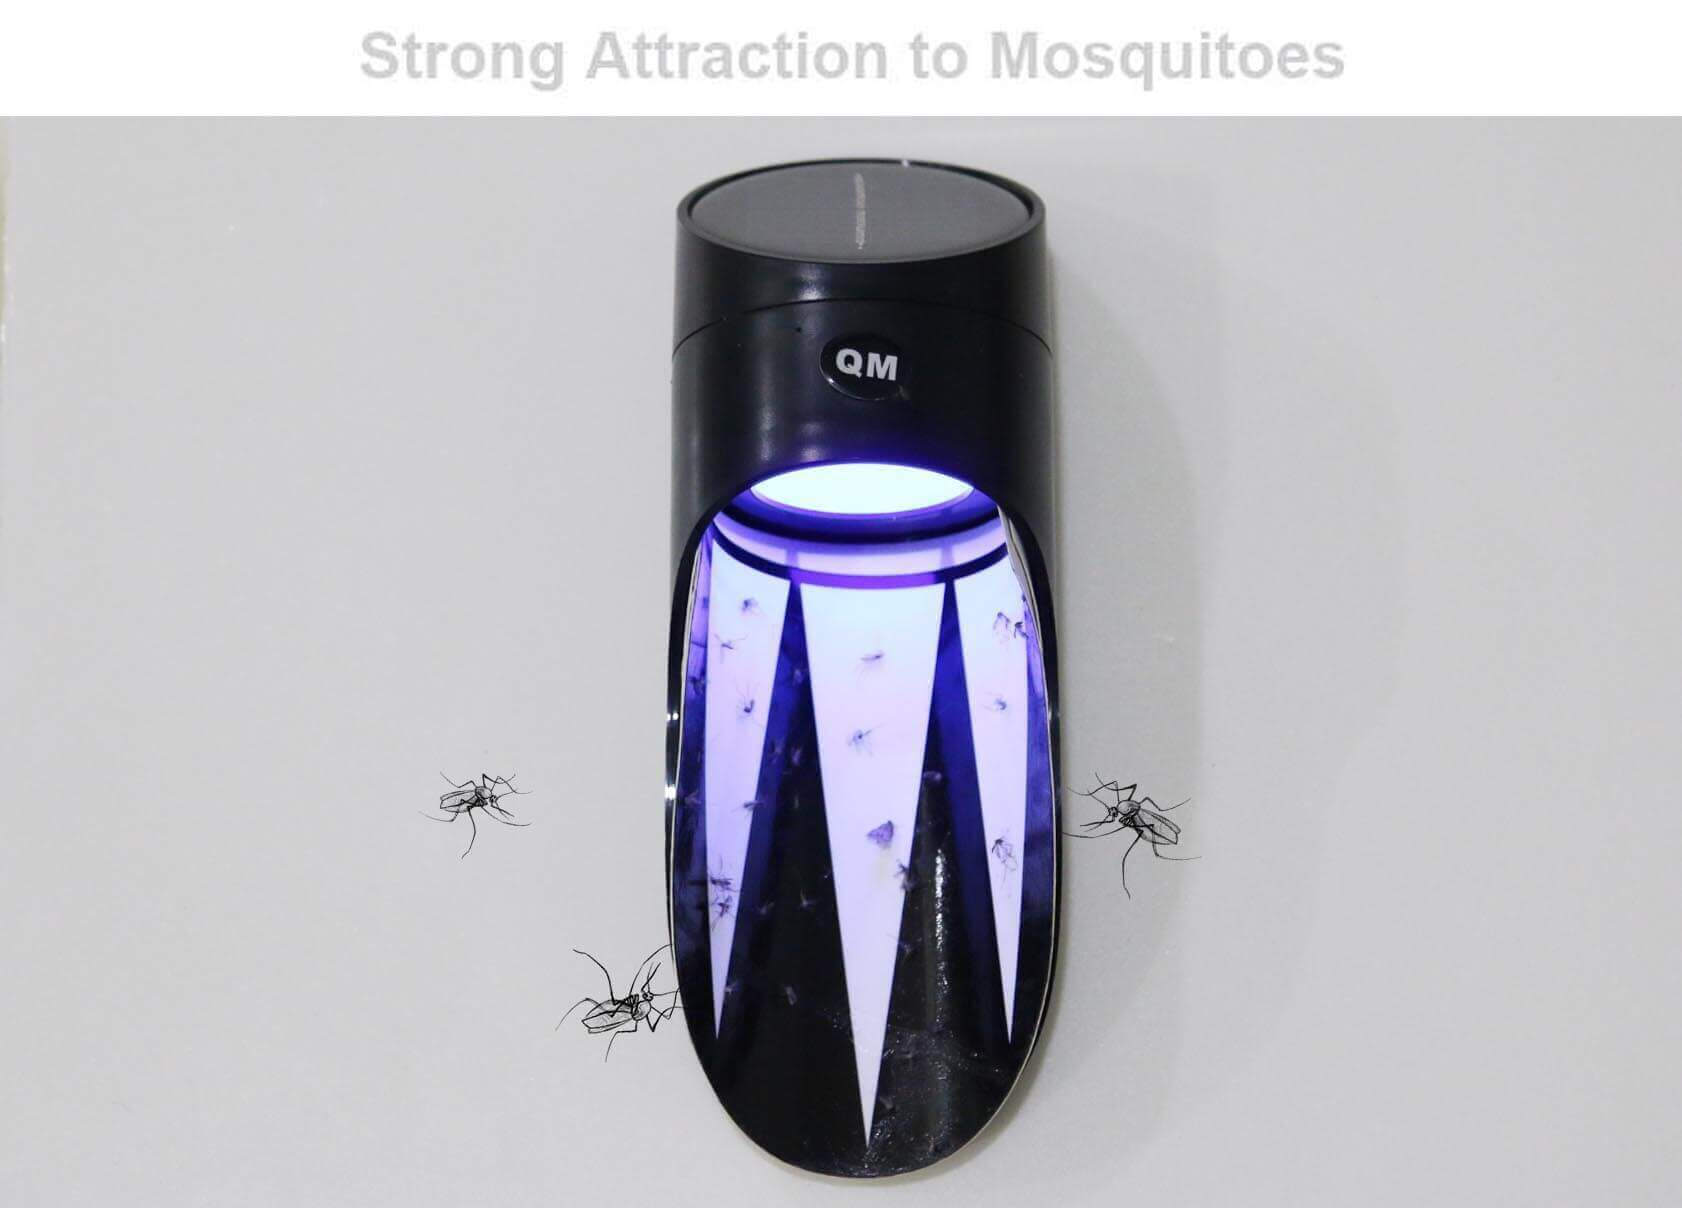 This is The Best Outdoor Insect Killer in QM  - mosquito